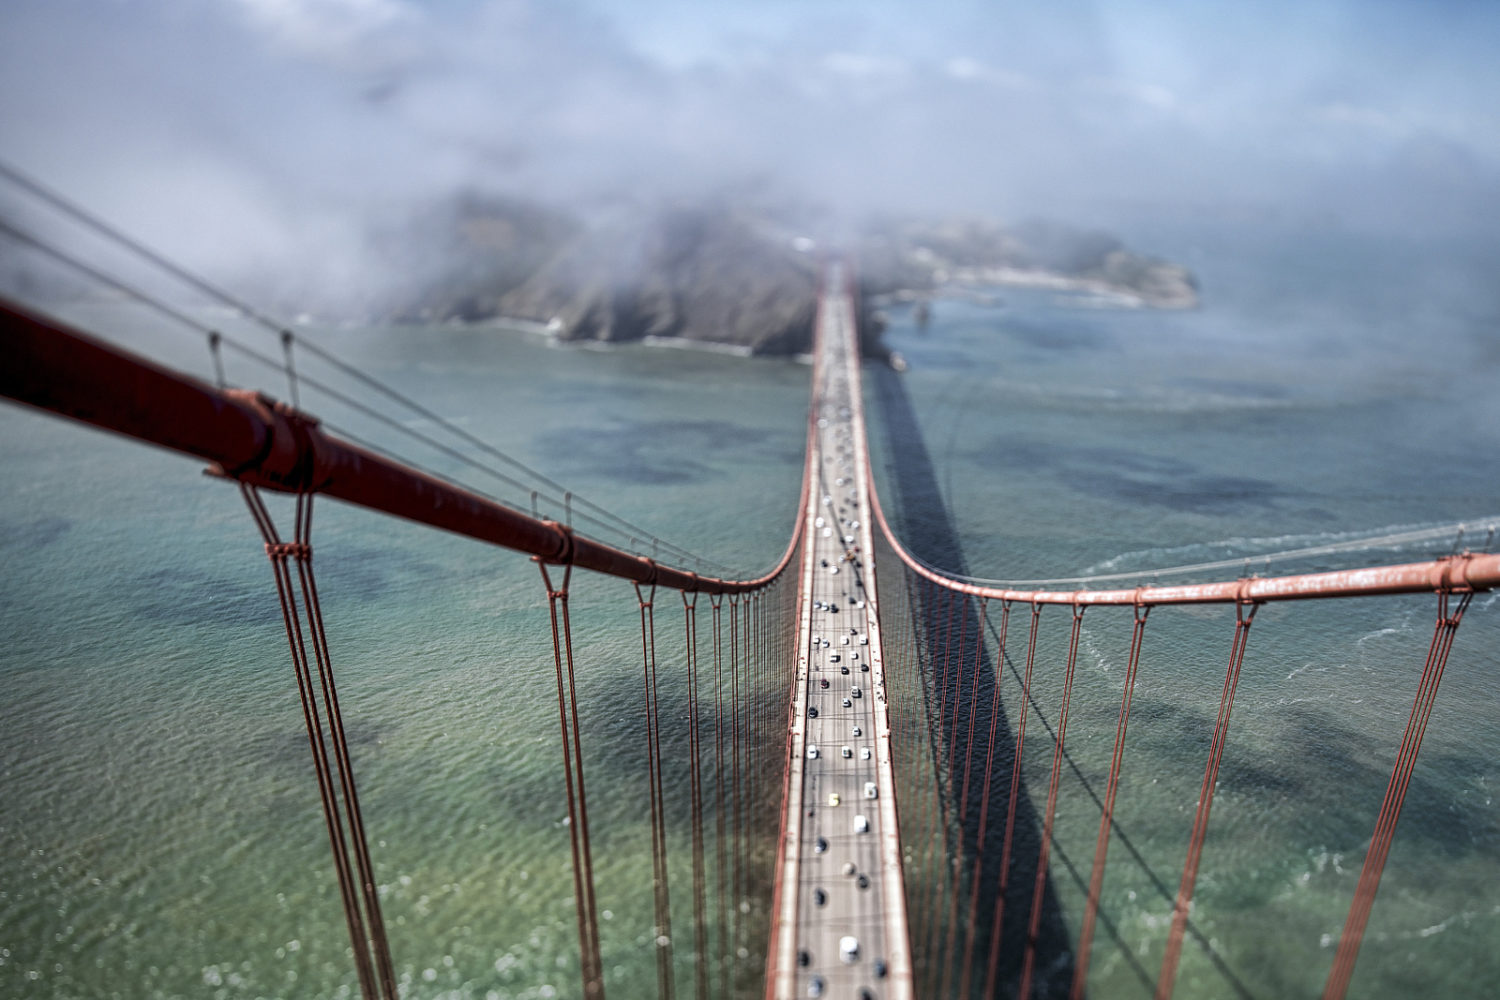 I Climbed To the Top of the Golden Gate Bridge To Get These Epic Photos